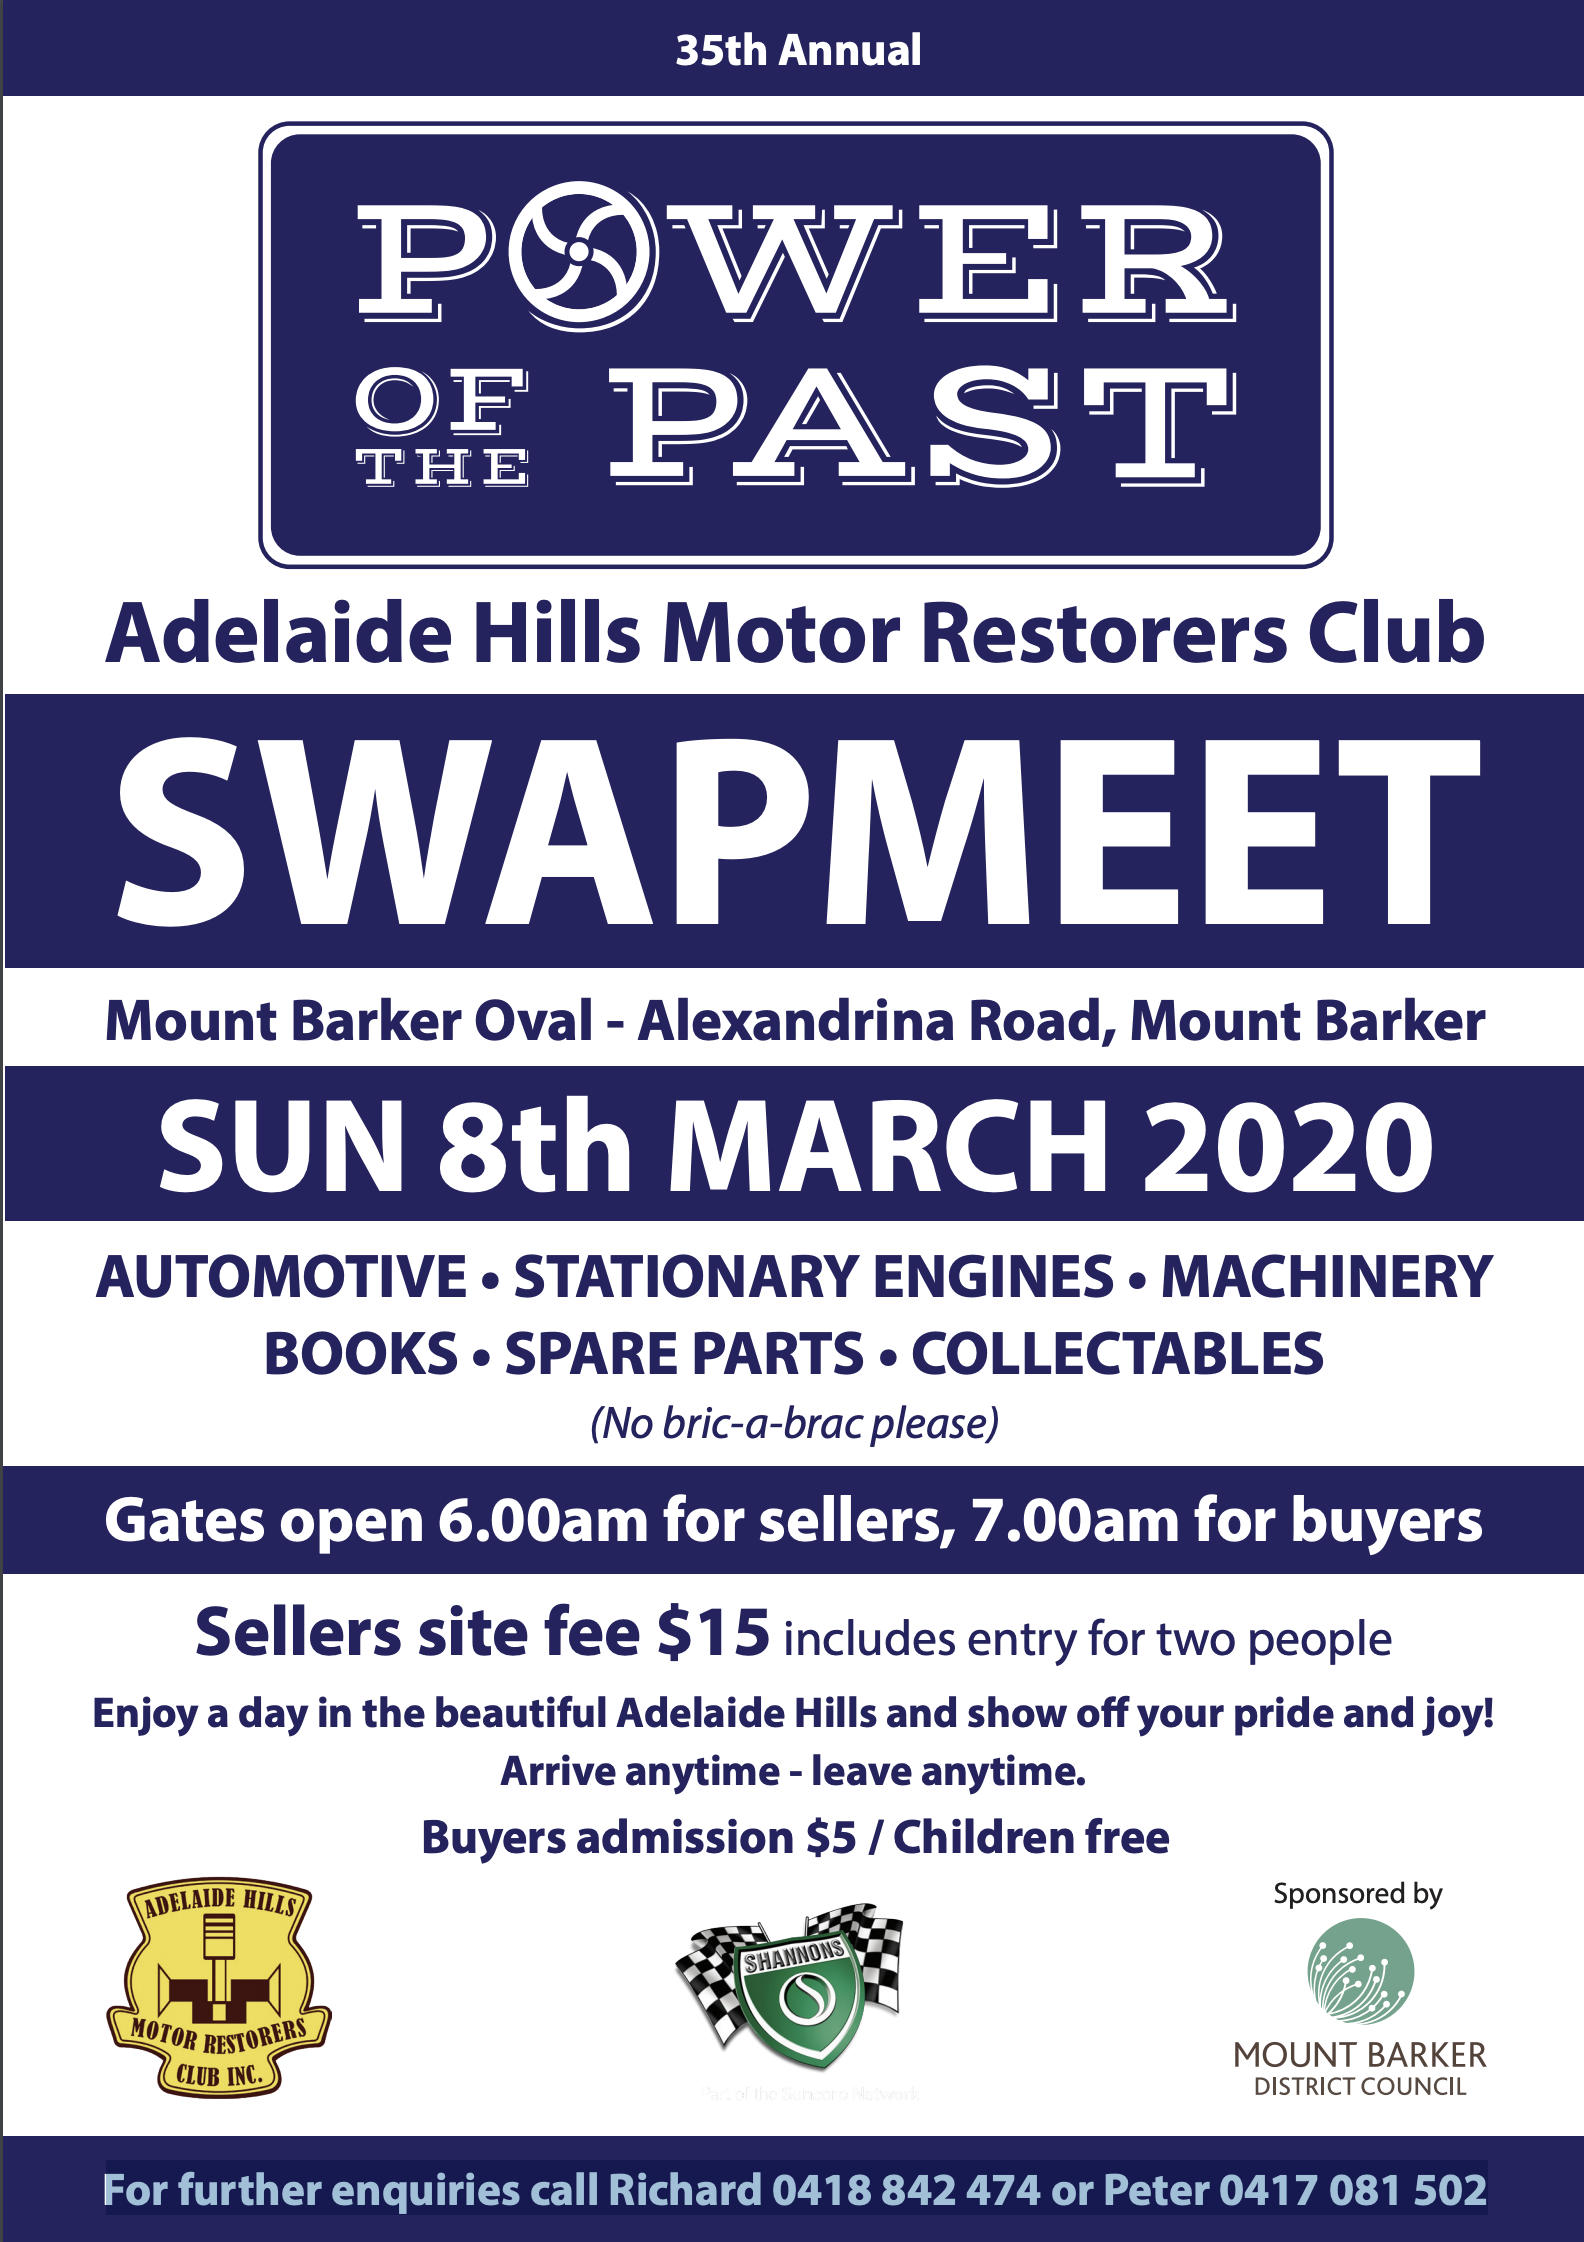 Swapmeet at Power of the Past 2020 @ Mt Barker Oval SA | Mount Barker | South Australia | Australia